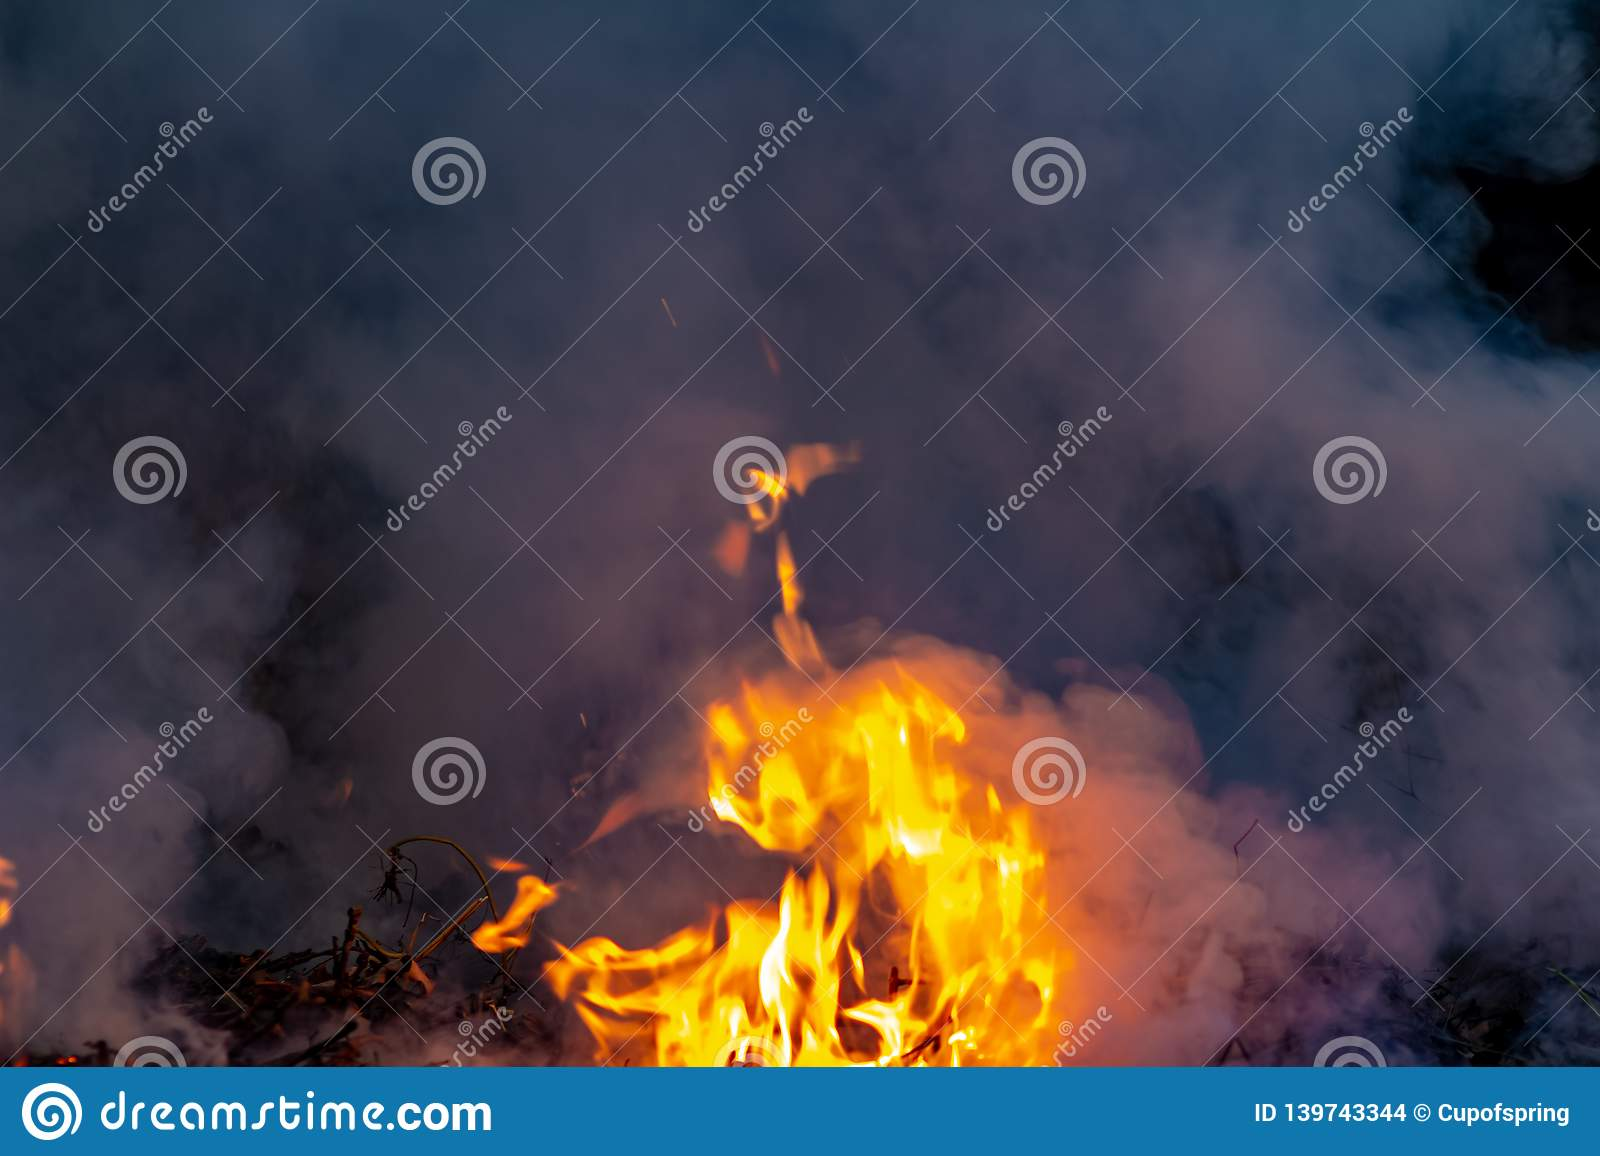 Forest wildfire at night whole area covered by flame and clouds of dark smoke. Distorted details due high temperature and